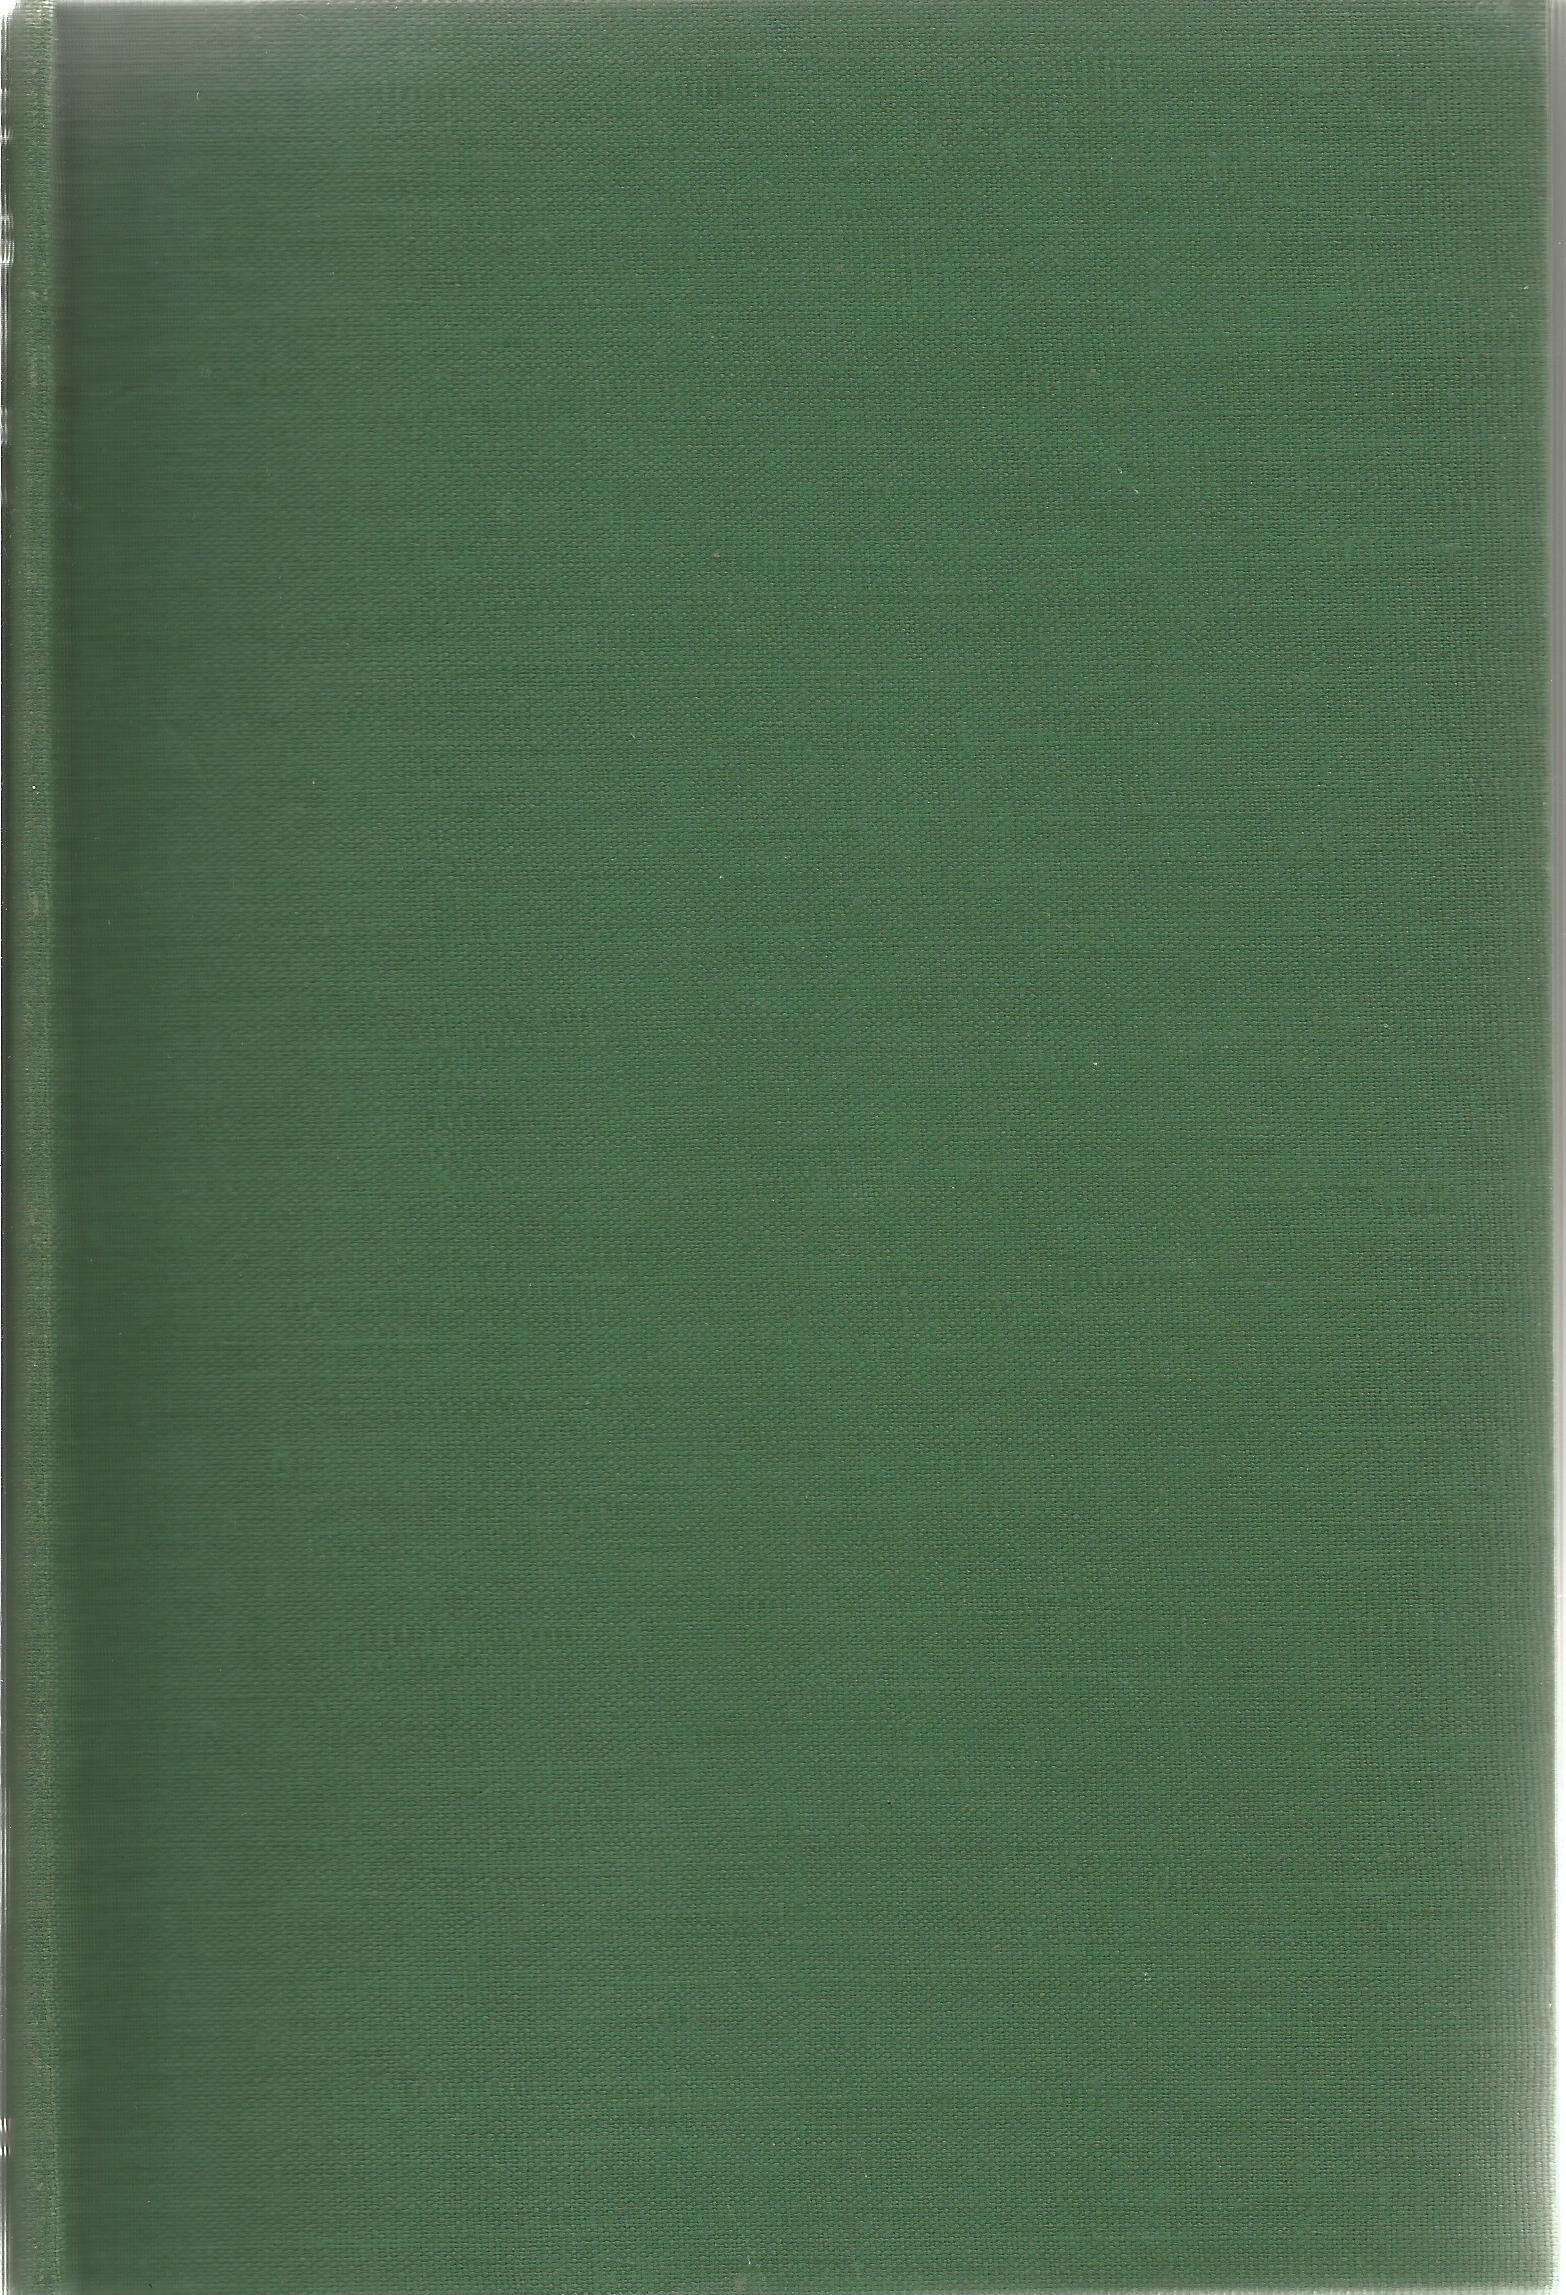 Charles Morgan Hardback Book A Breeze of Morning 1951 signed by the Author on the Title Page and